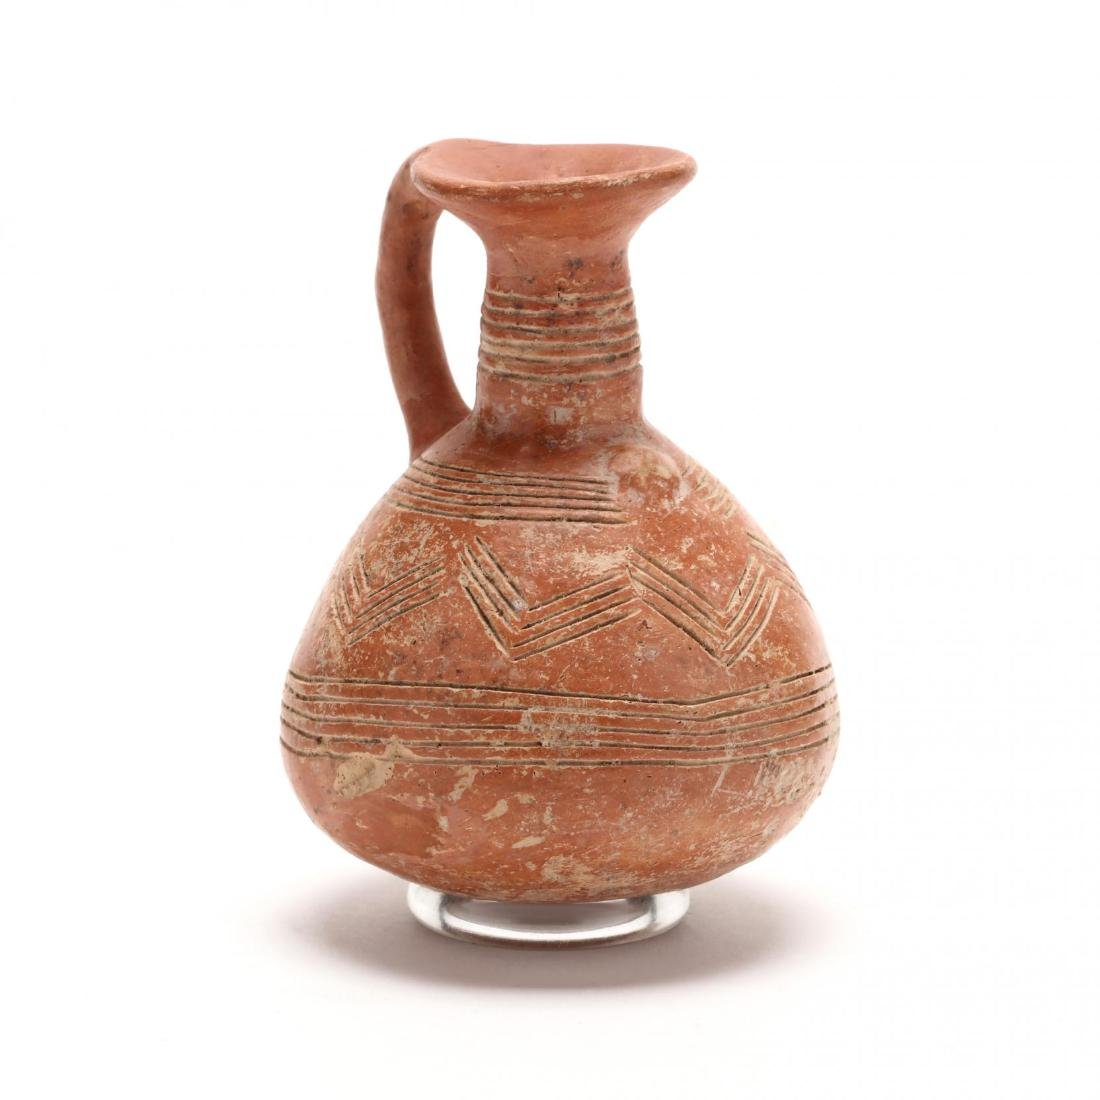 Cypriot Early Bronze Age Polished Red Ware Jug